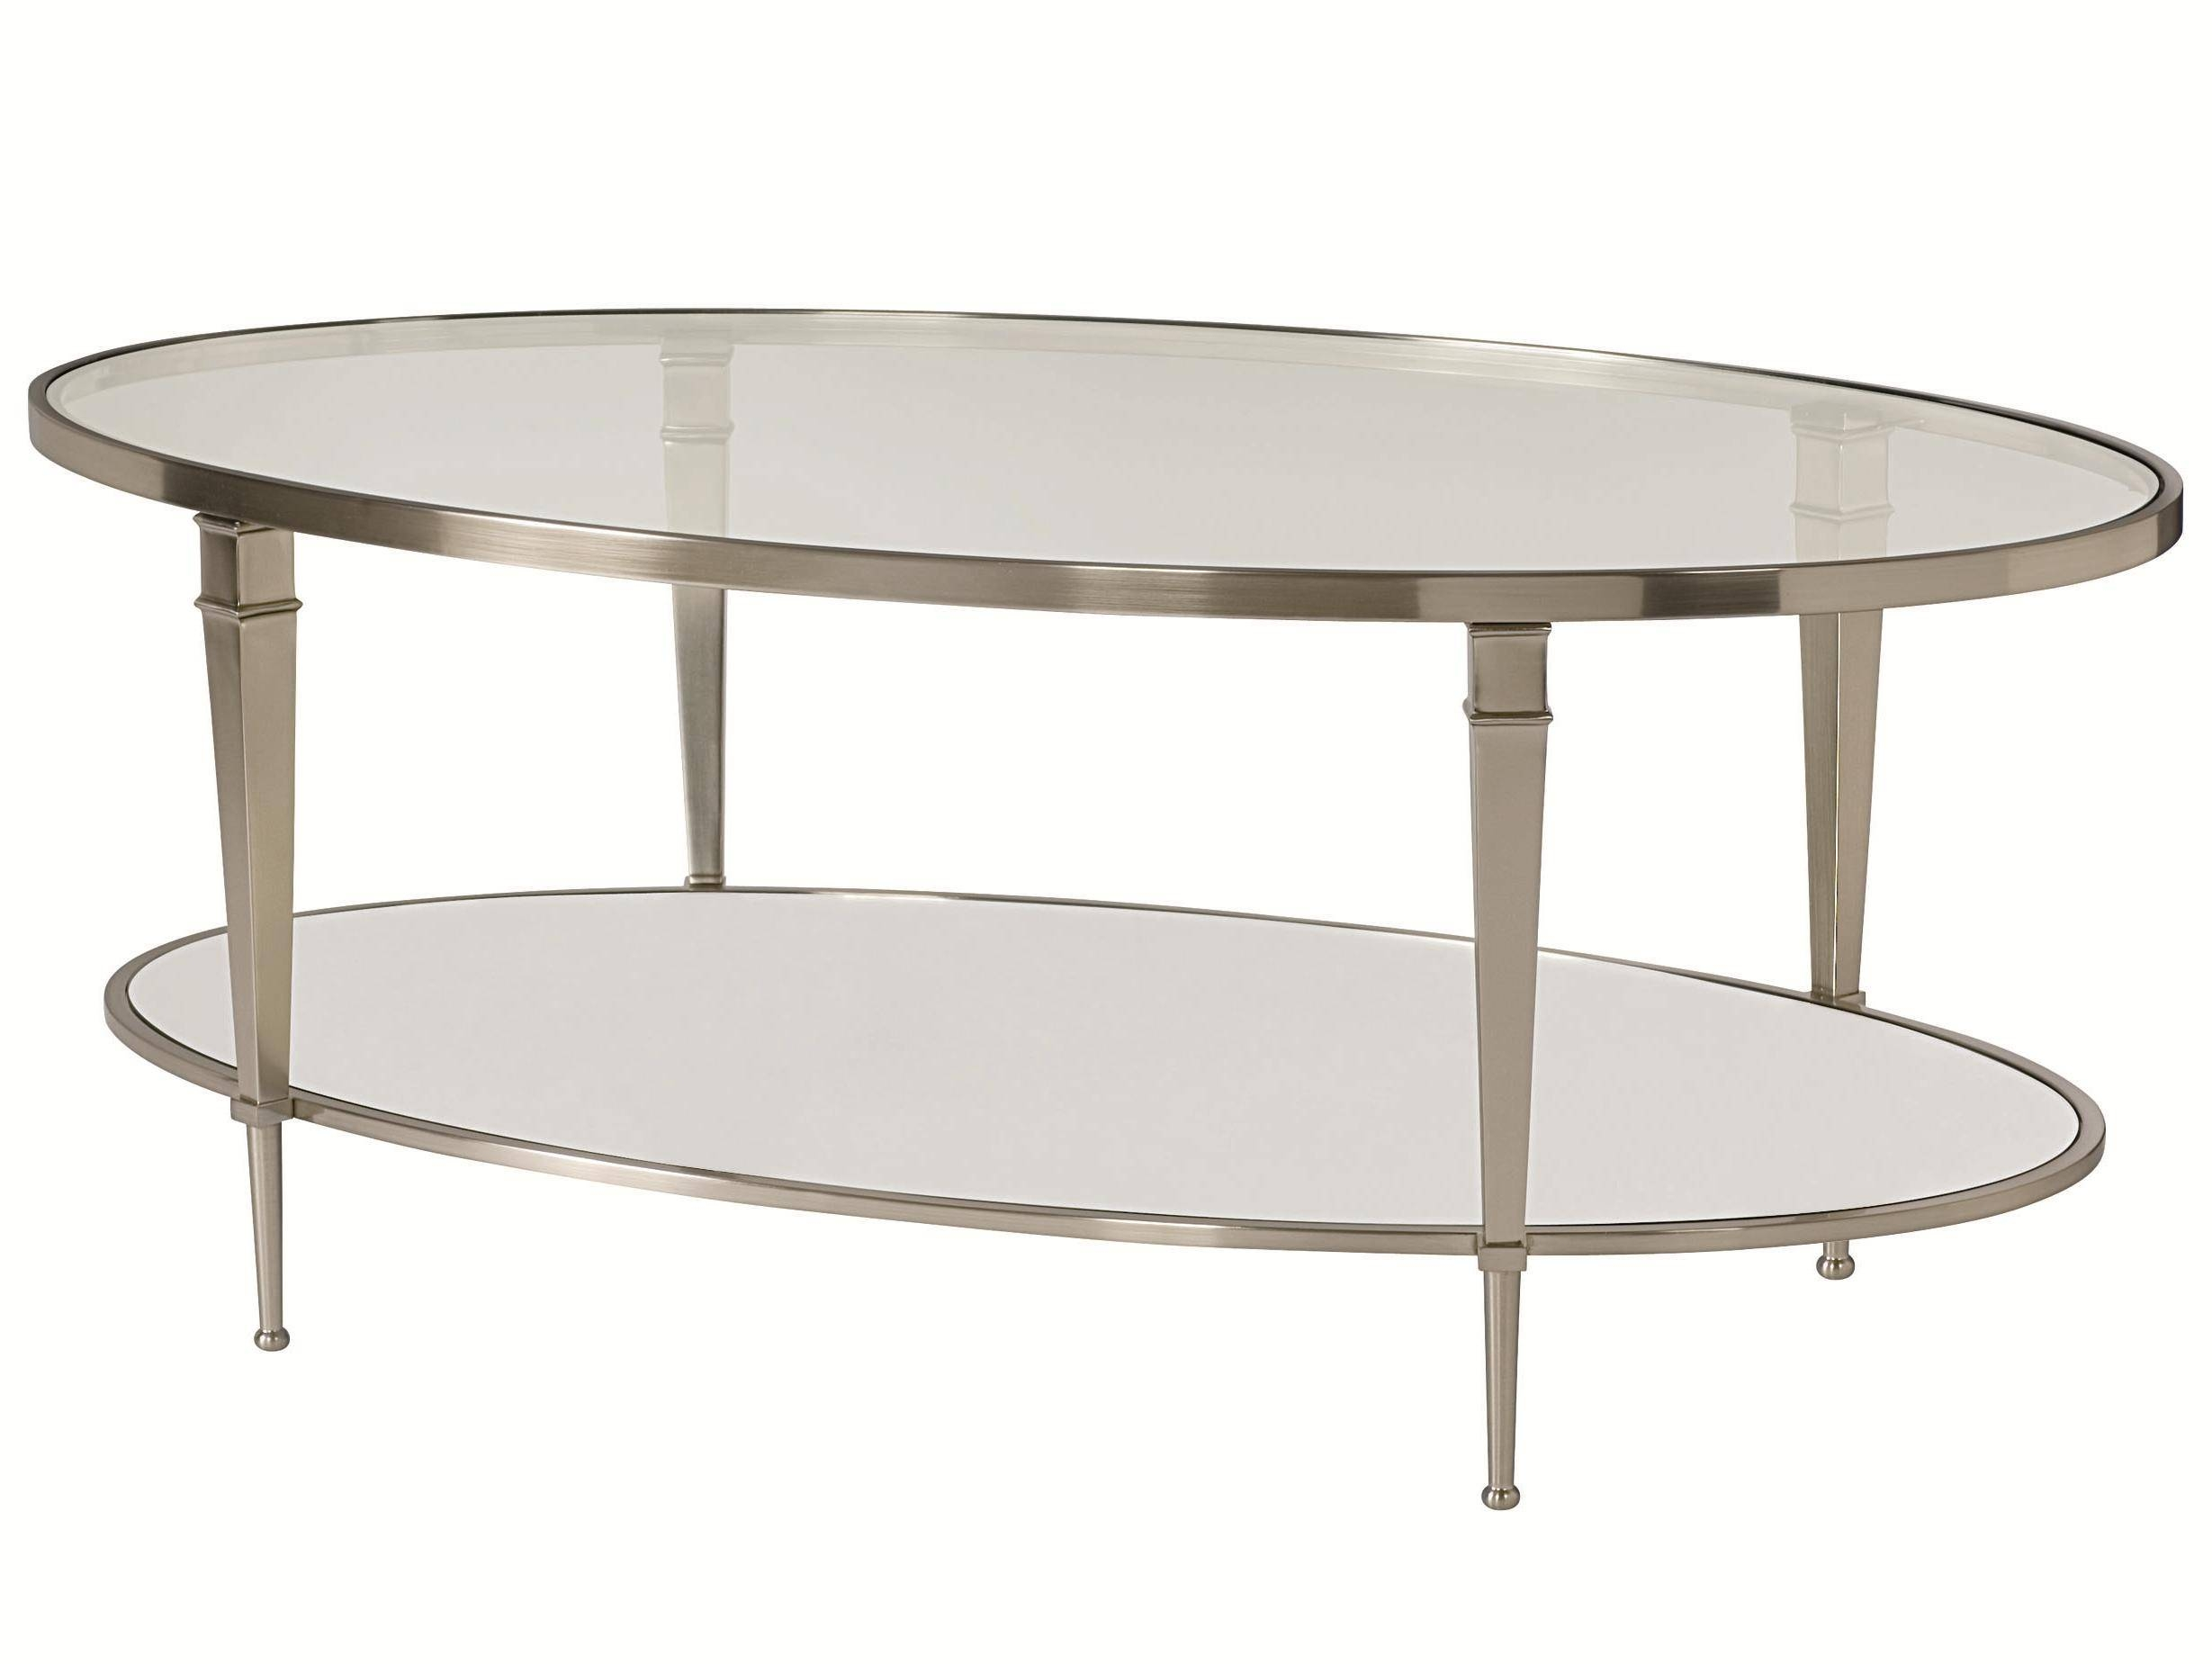 Oval Satin Nickel Antique Mirror Finish Cocktail Tablehammary With Regard To Antique Mirrored Coffee Tables (View 21 of 30)